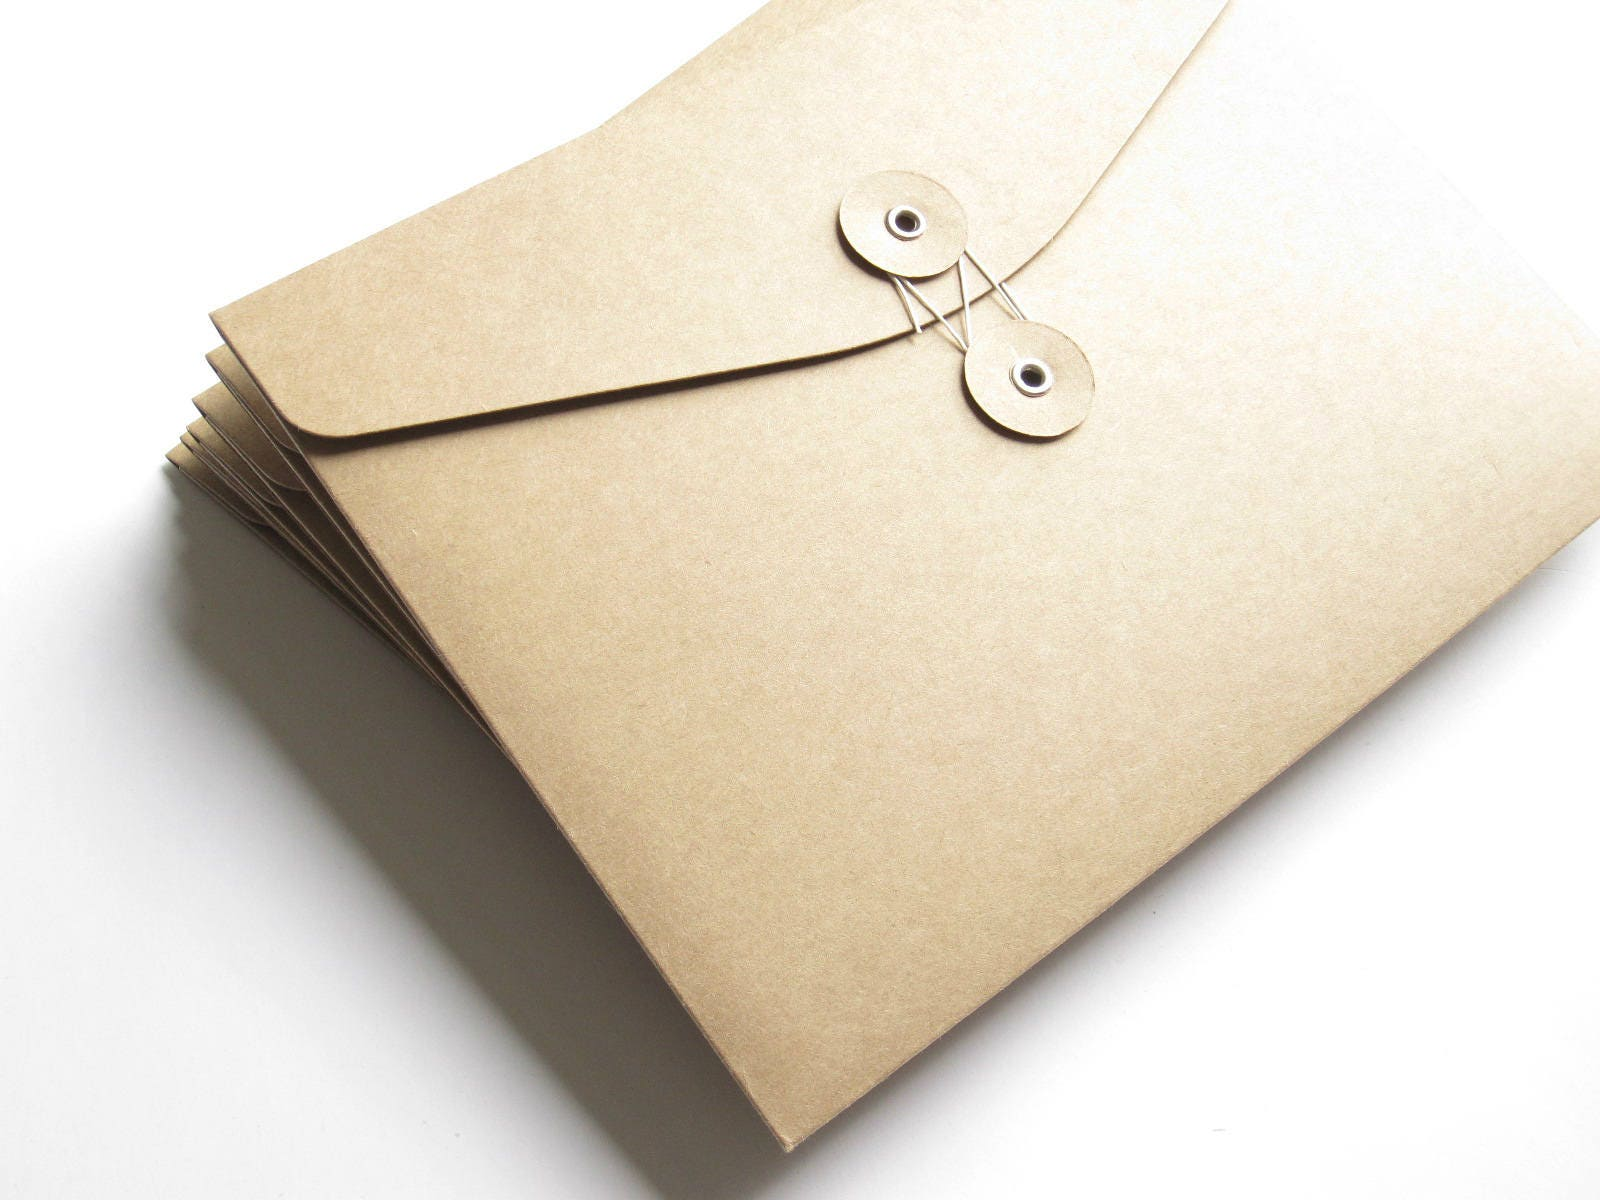 brown kraft paper envelopes Amazoncom : jam paper a7 invitation envelope - 5 1/4 x 7 1/4 - brown kraft  paper bag recycled - 25/pack : office products.